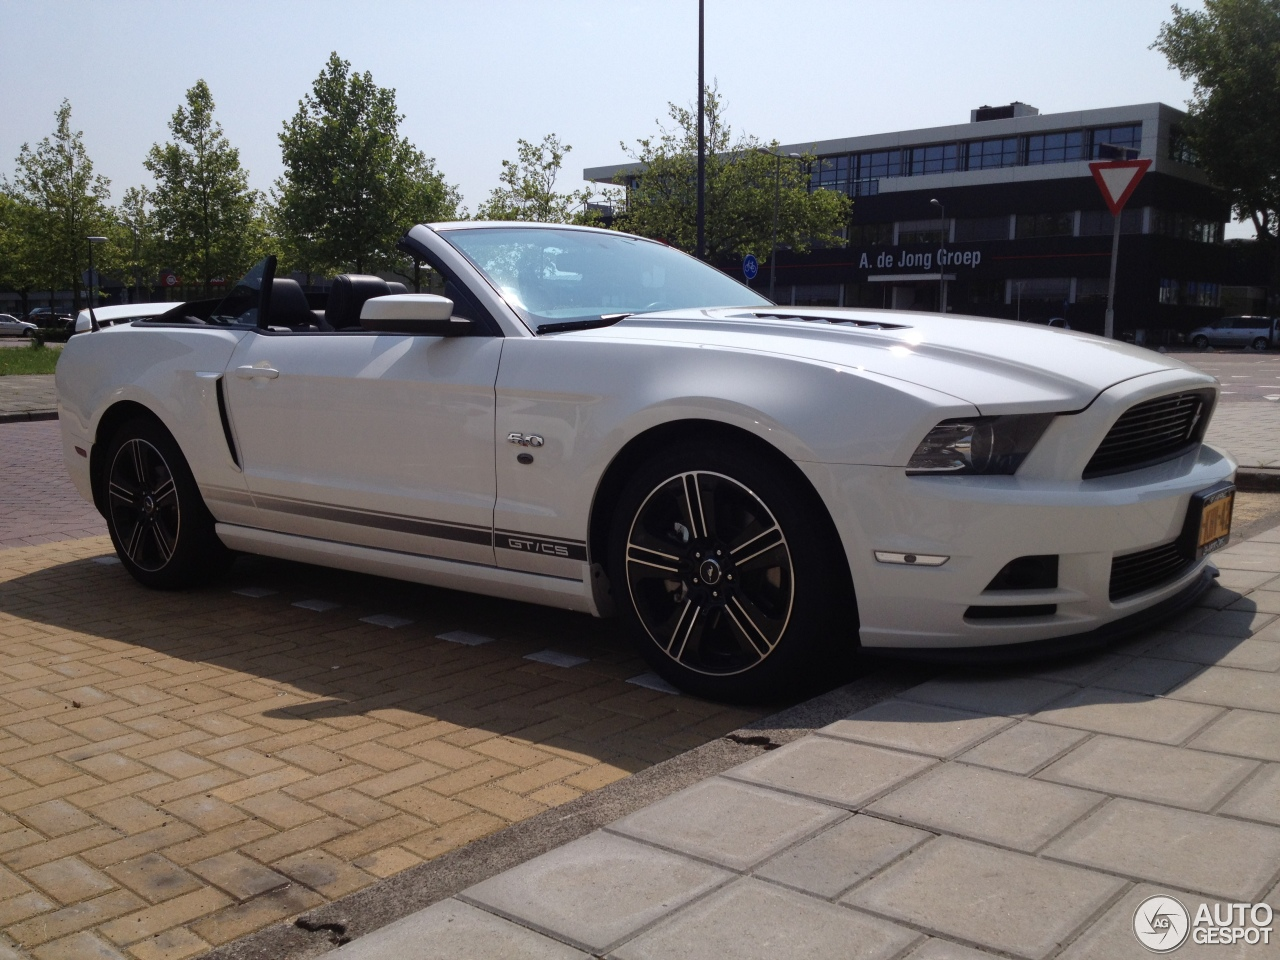 2011 Mustang Gt California Special Specsford 2007 Ford Convertible 2012 5